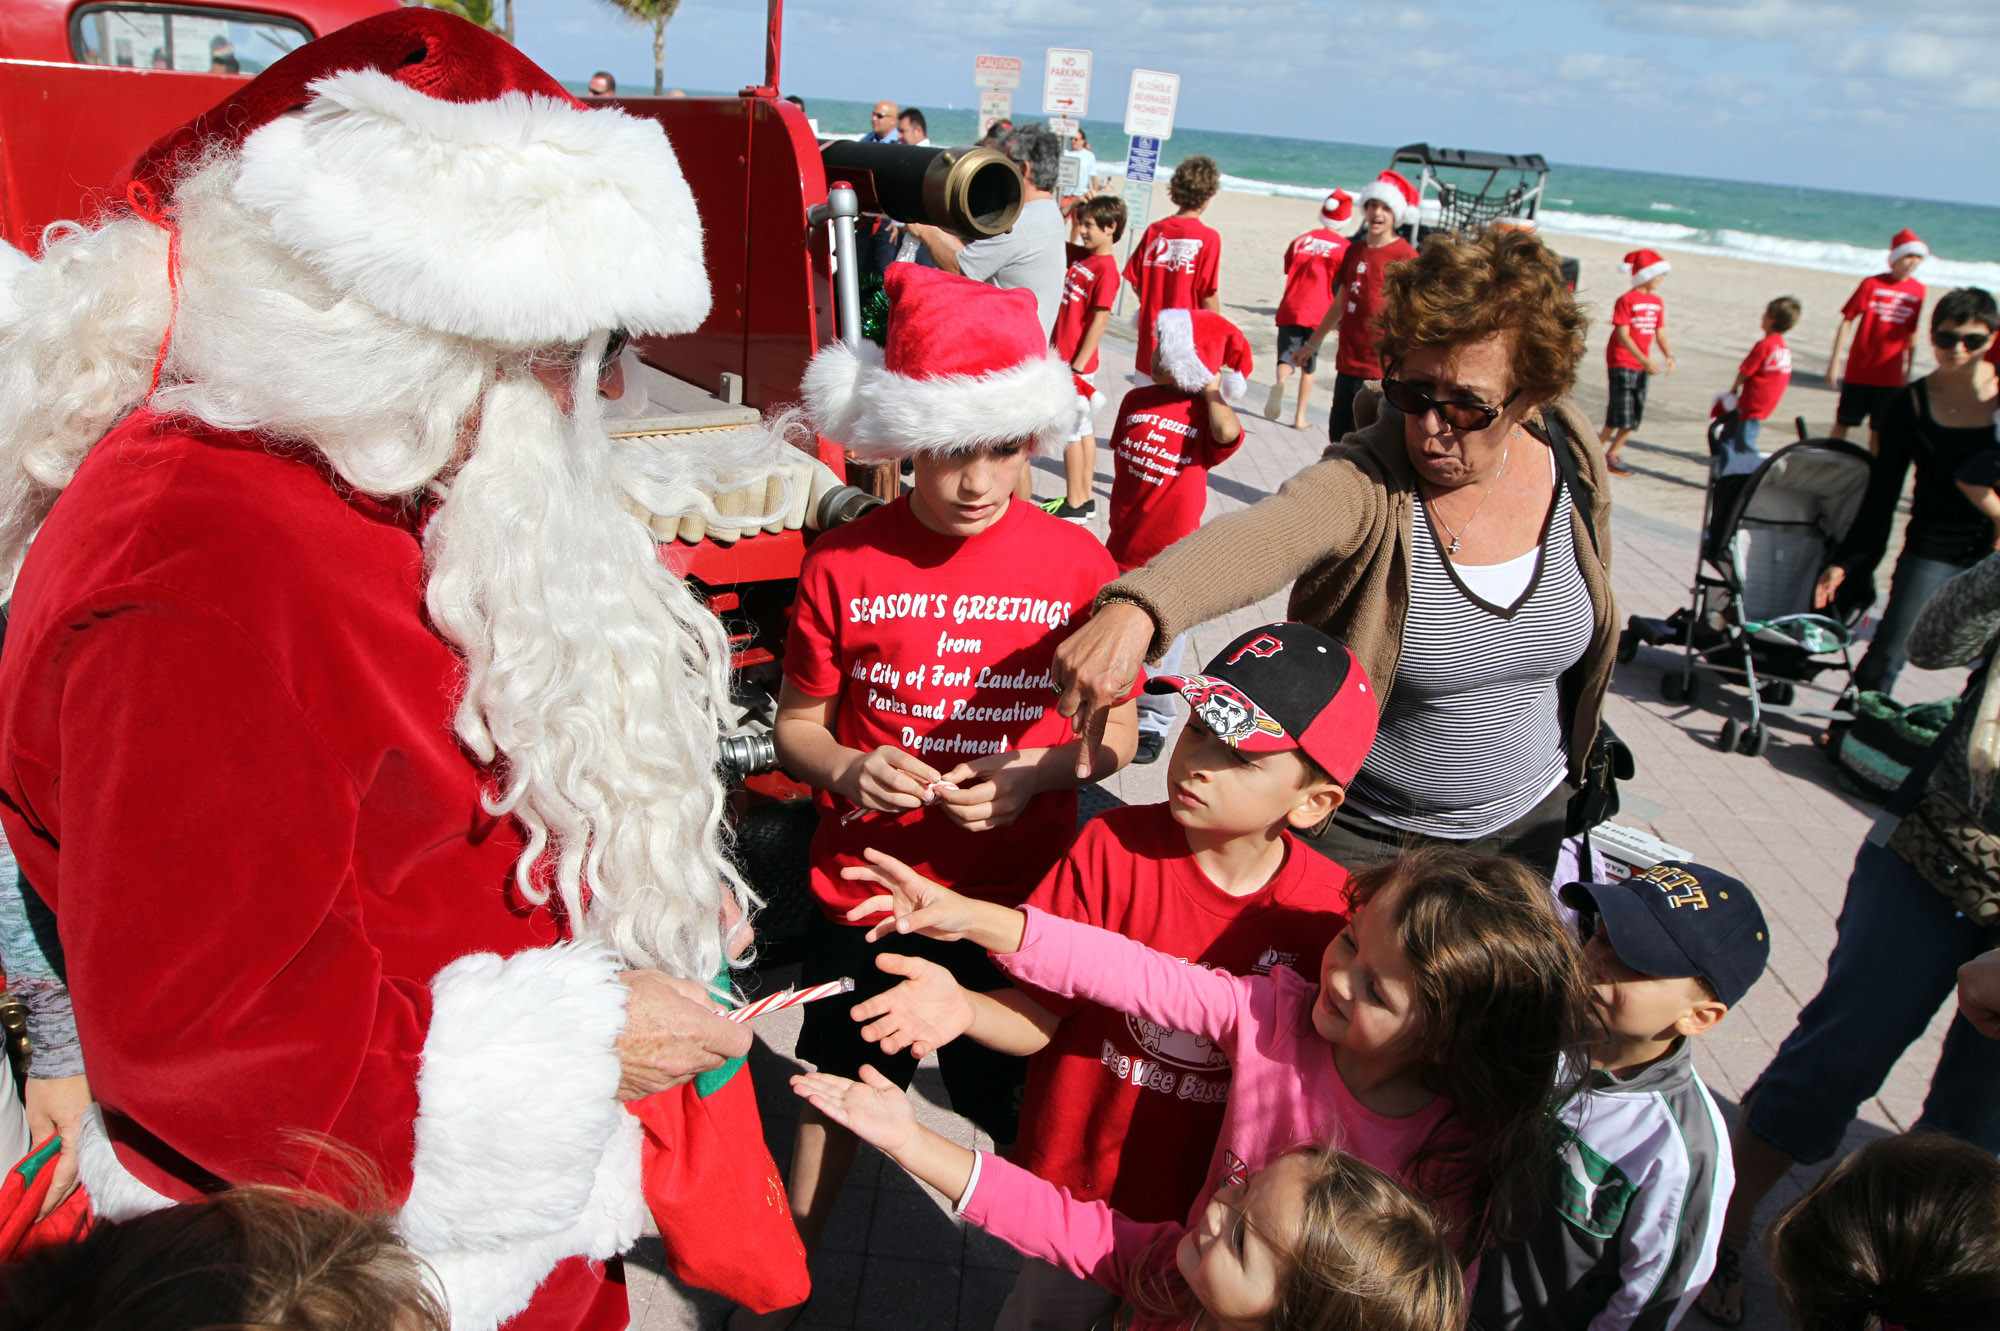 Santa spotted at Fort Lauderdale beach - Santa goes to the beach